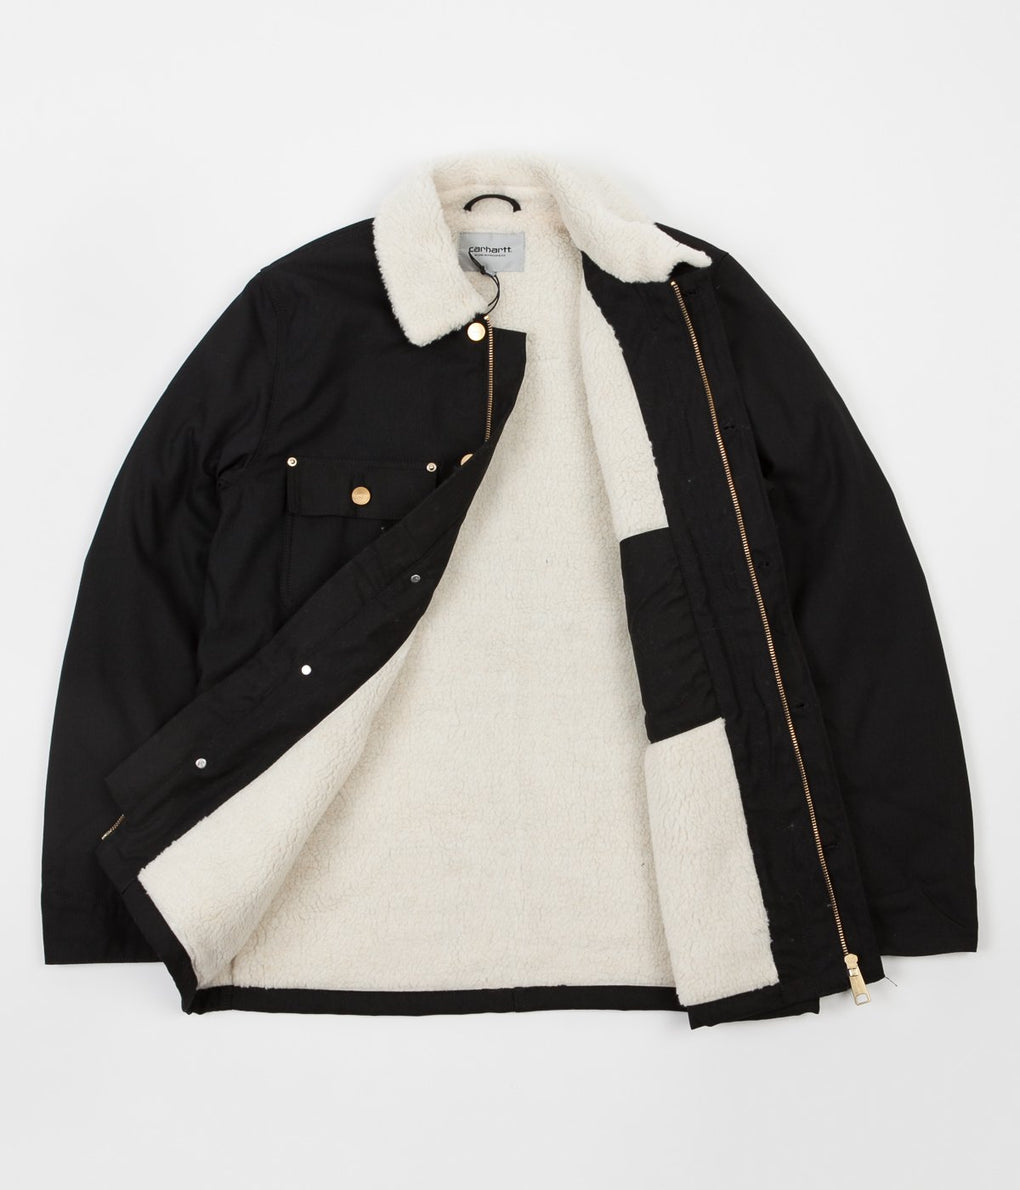 Carhartt Fairmount Coat - Black Rigid